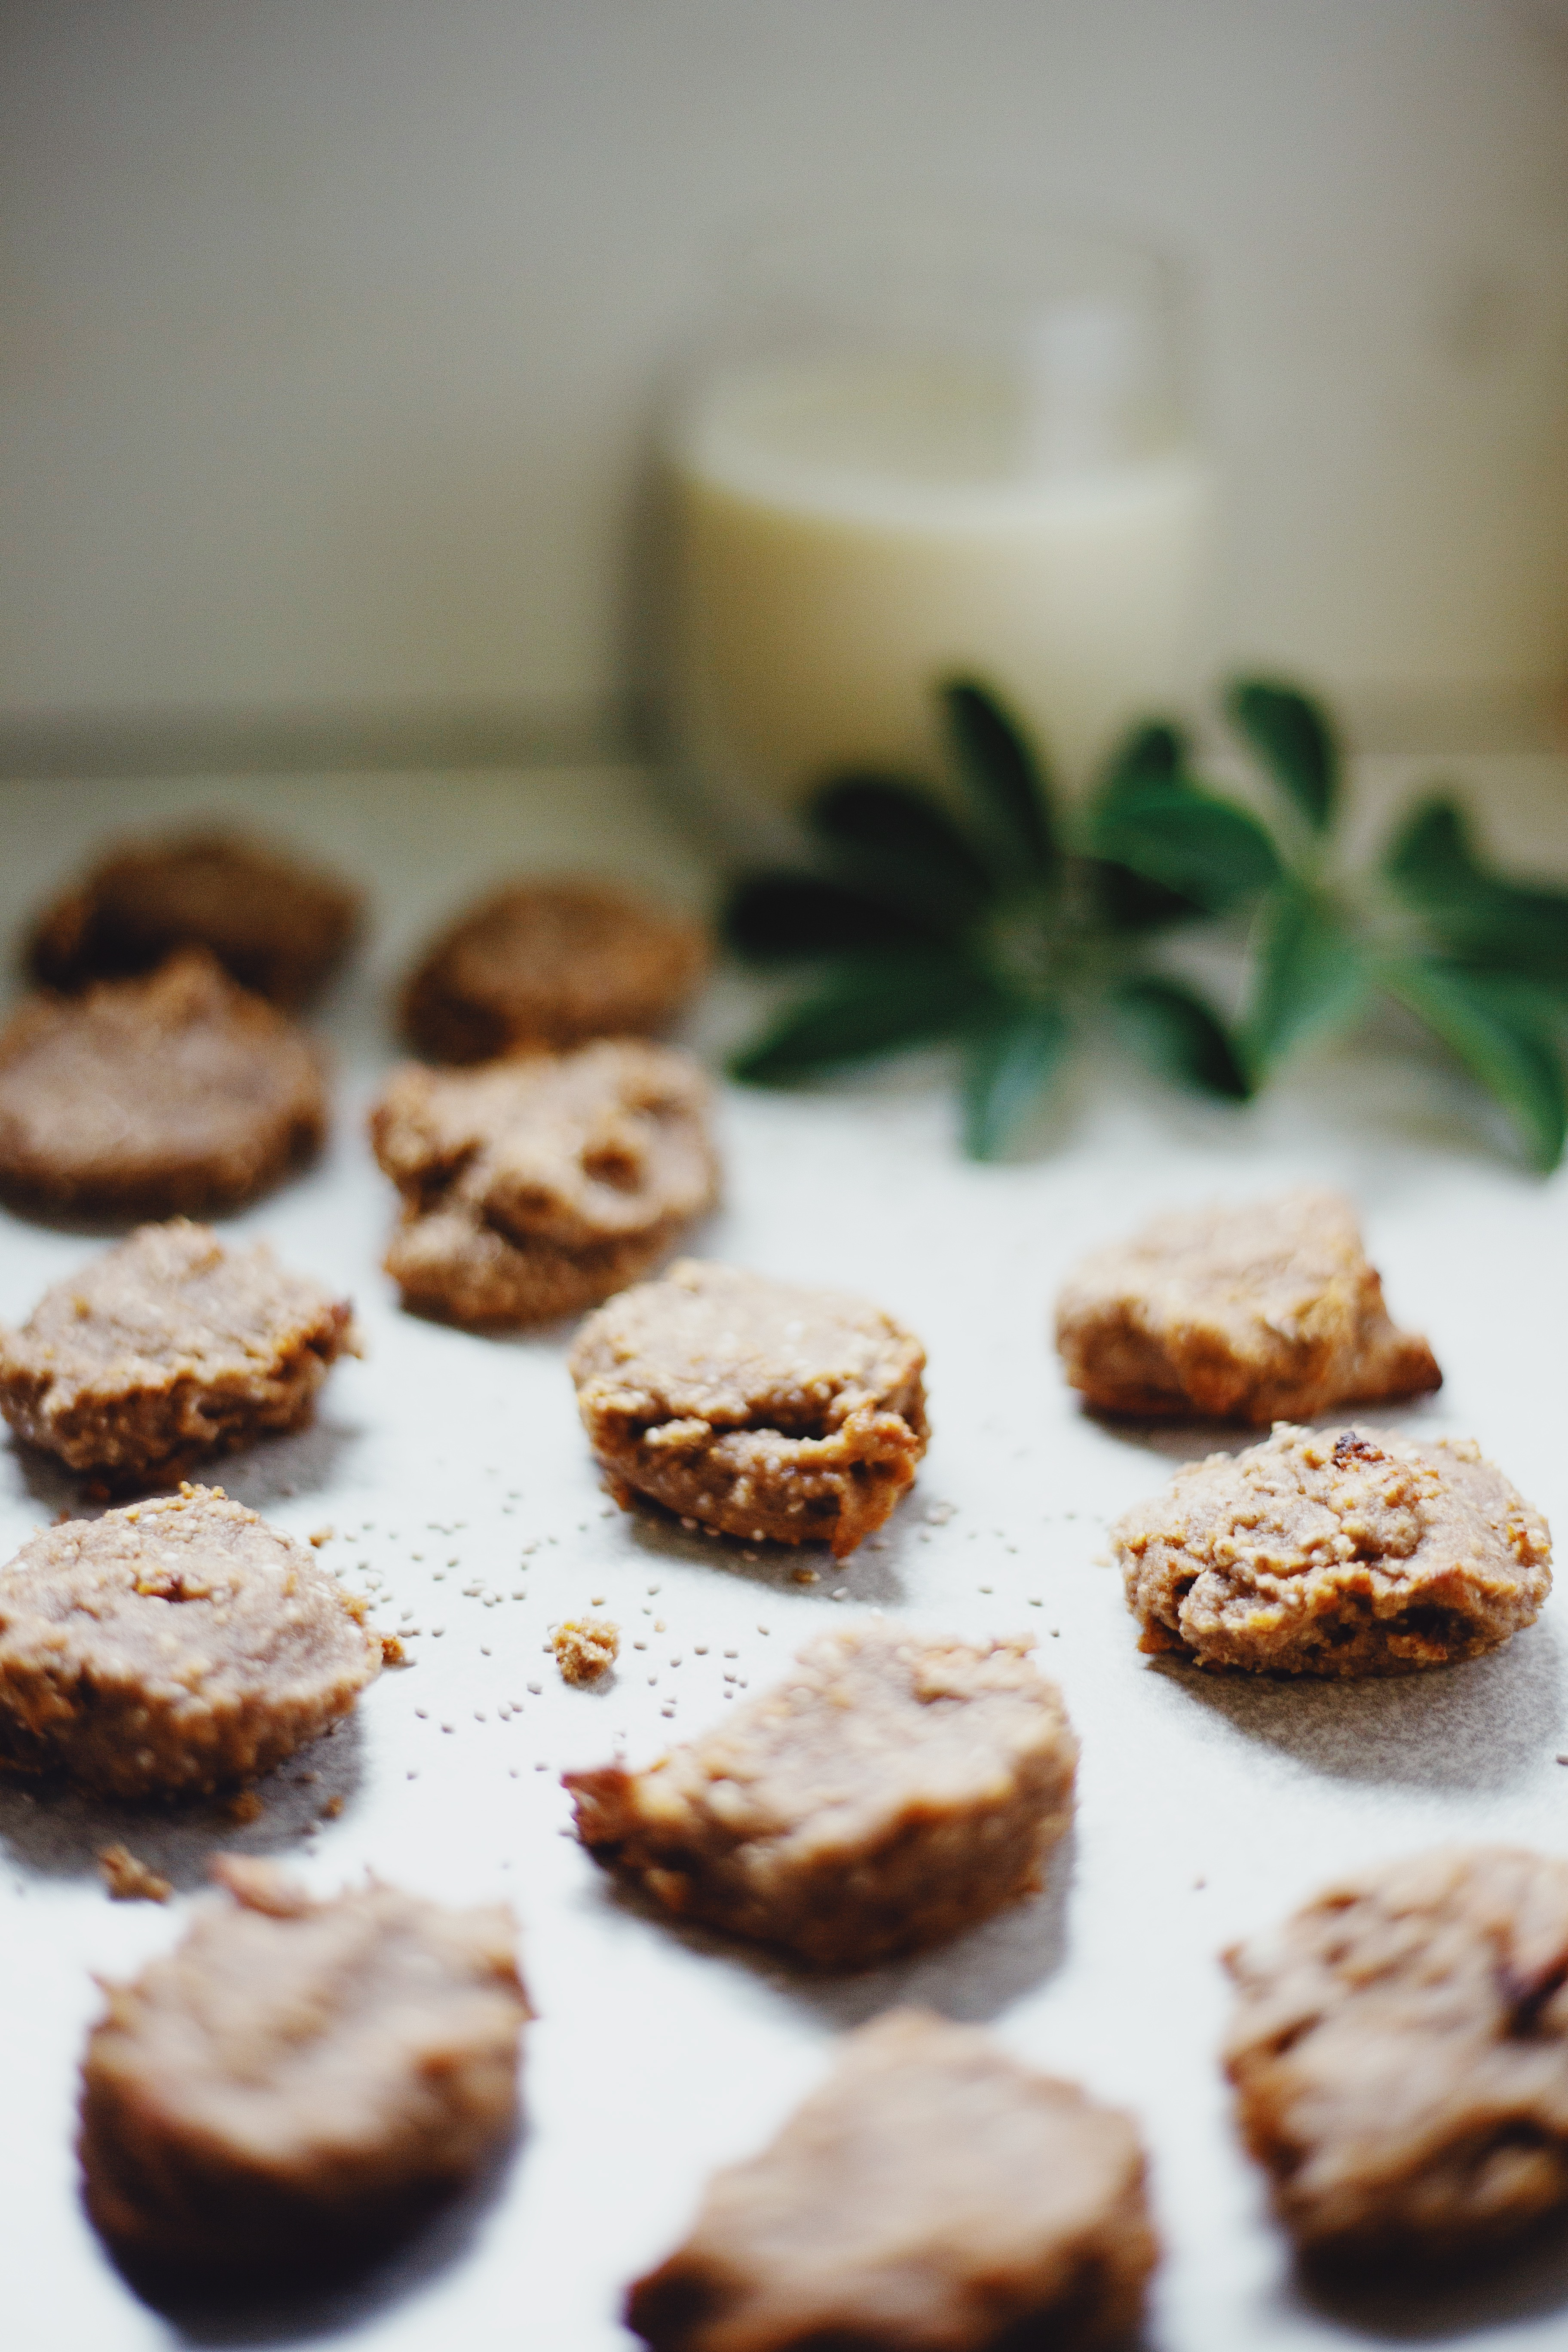 Healthy, Vegan and Gluten Free Chia Cookies Recipe